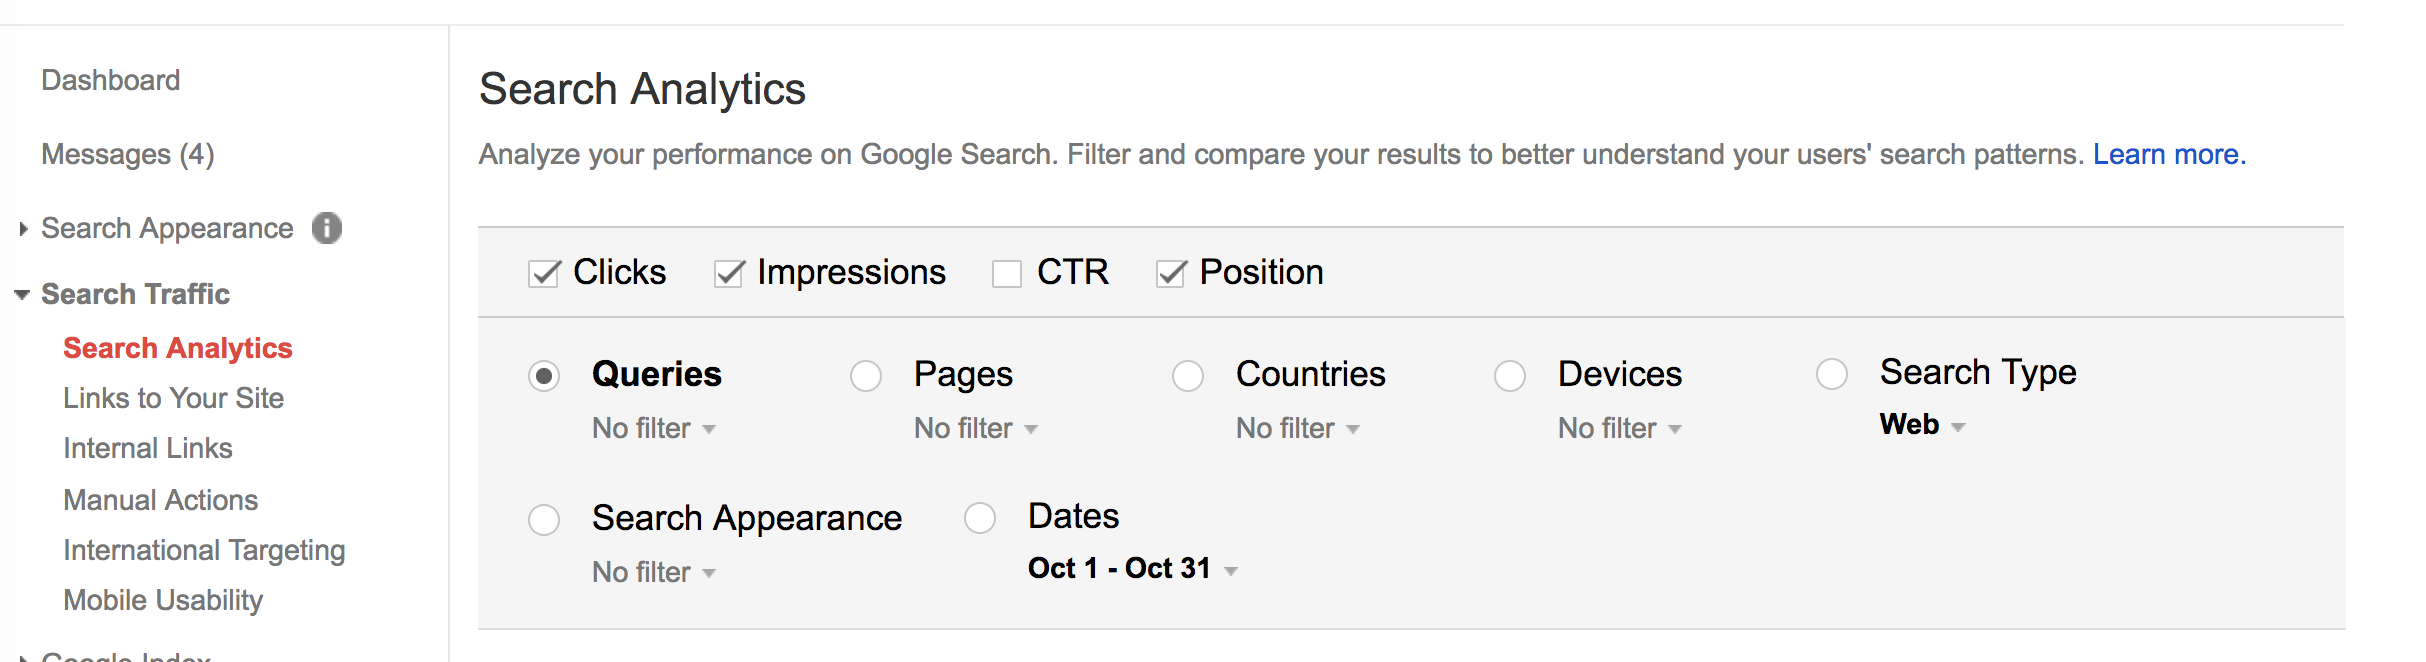 search analytics pre launch